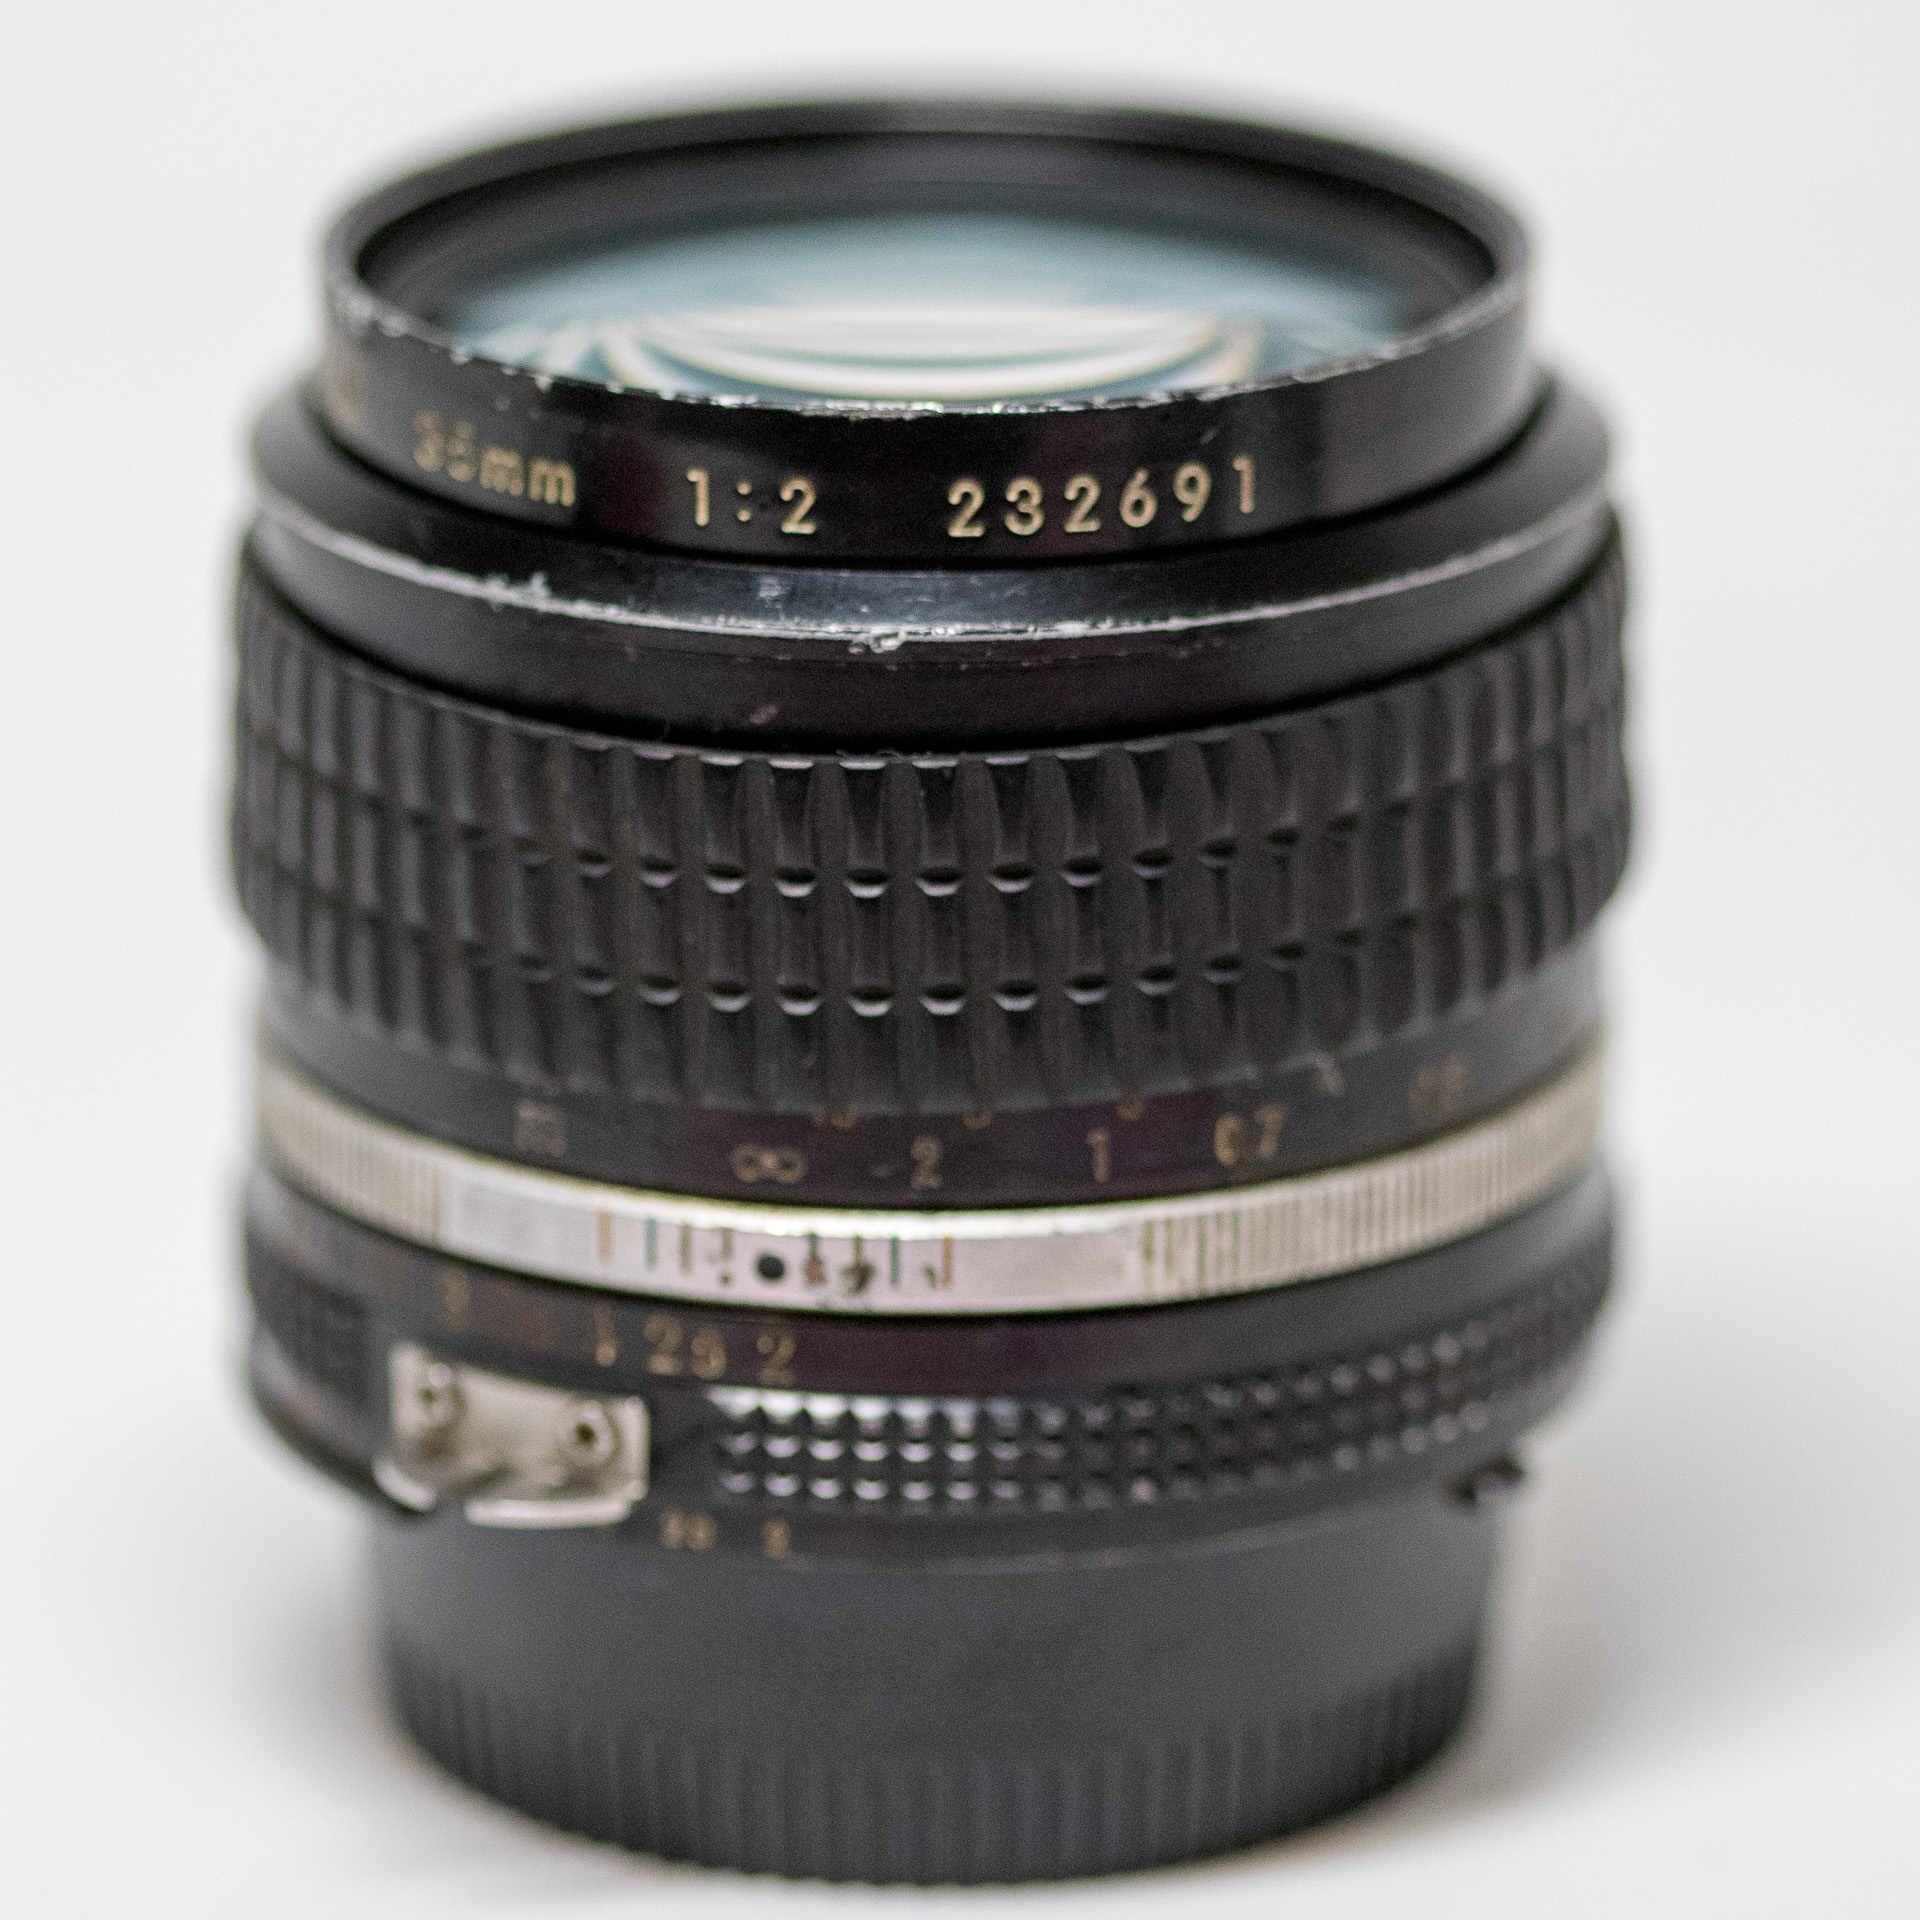 New Nikkor 35mm F2